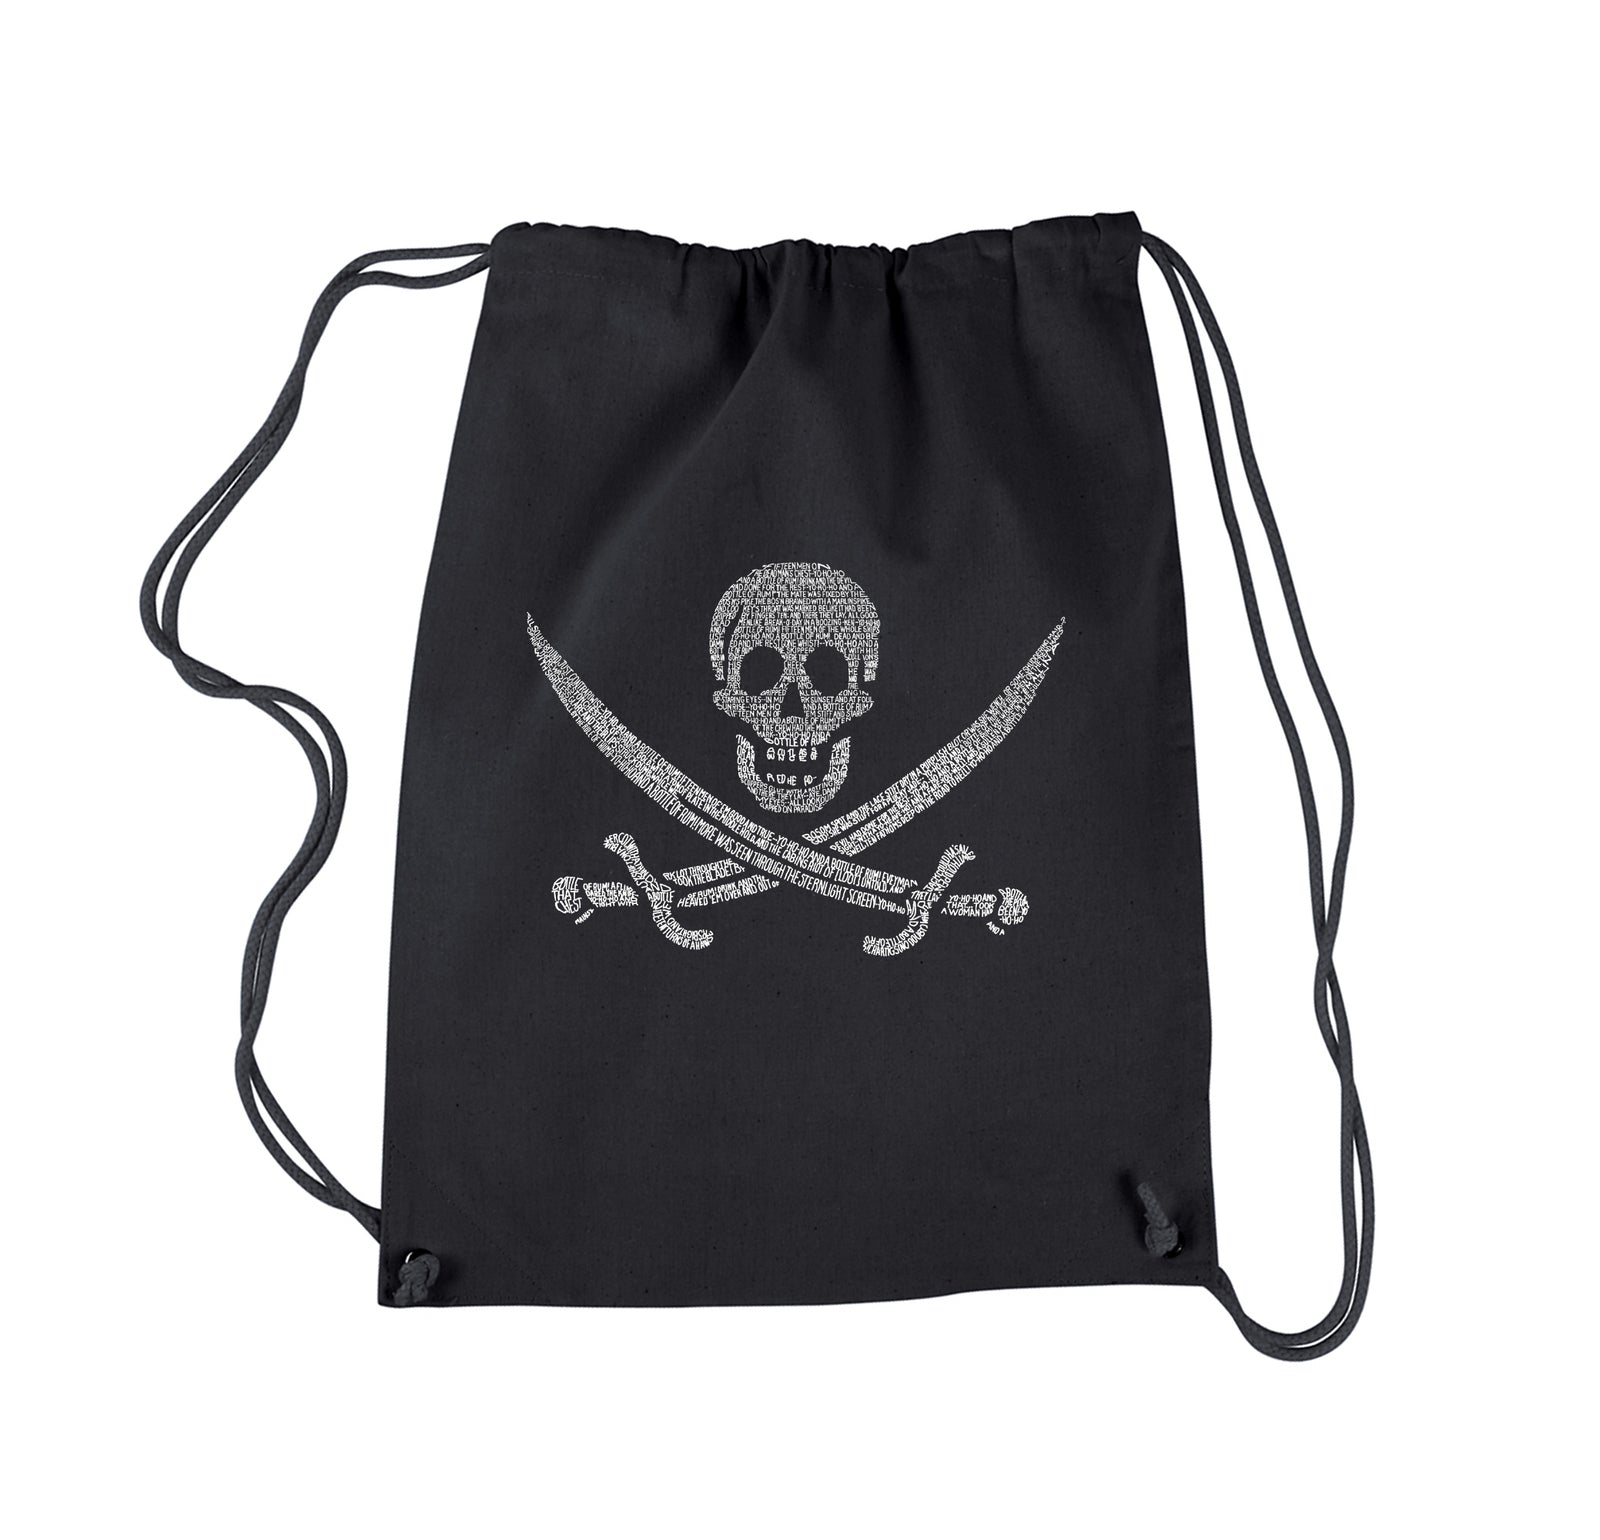 Drawstring Backpack - LYRICS TO A LEGENDARY PIRATE SONG